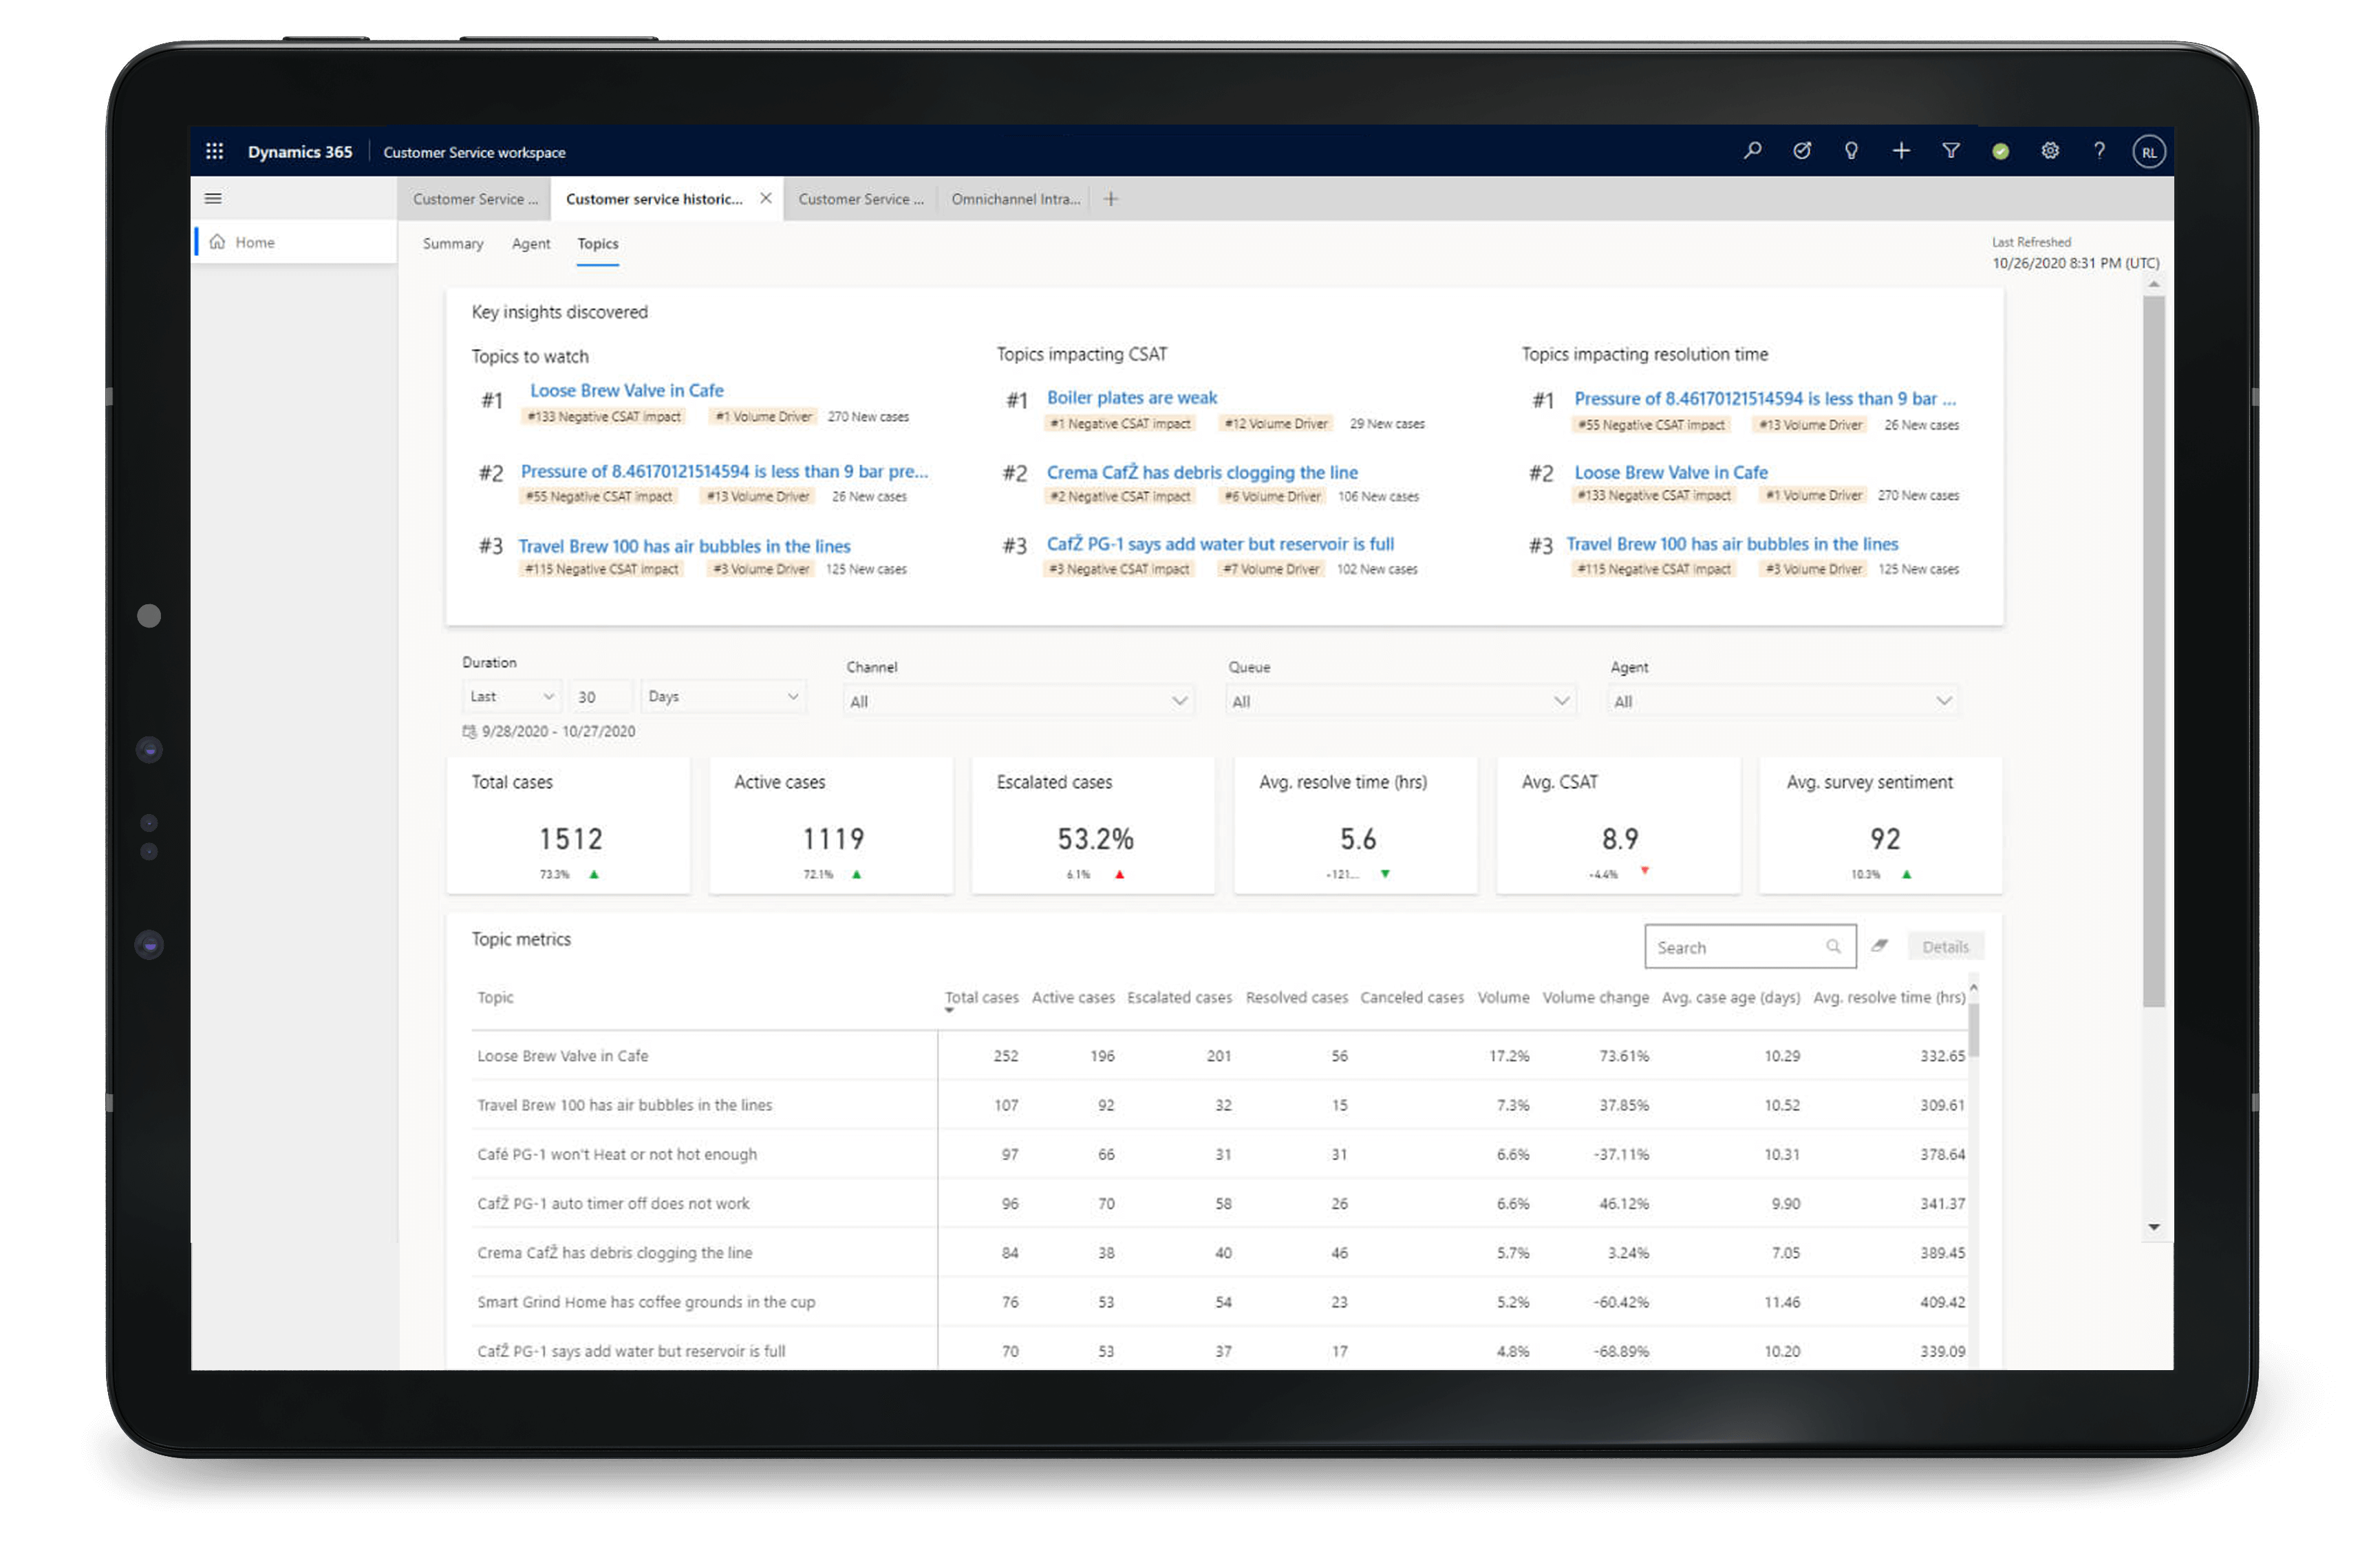 Track performance and get actionable insights with Dynamics 365 Customer Service